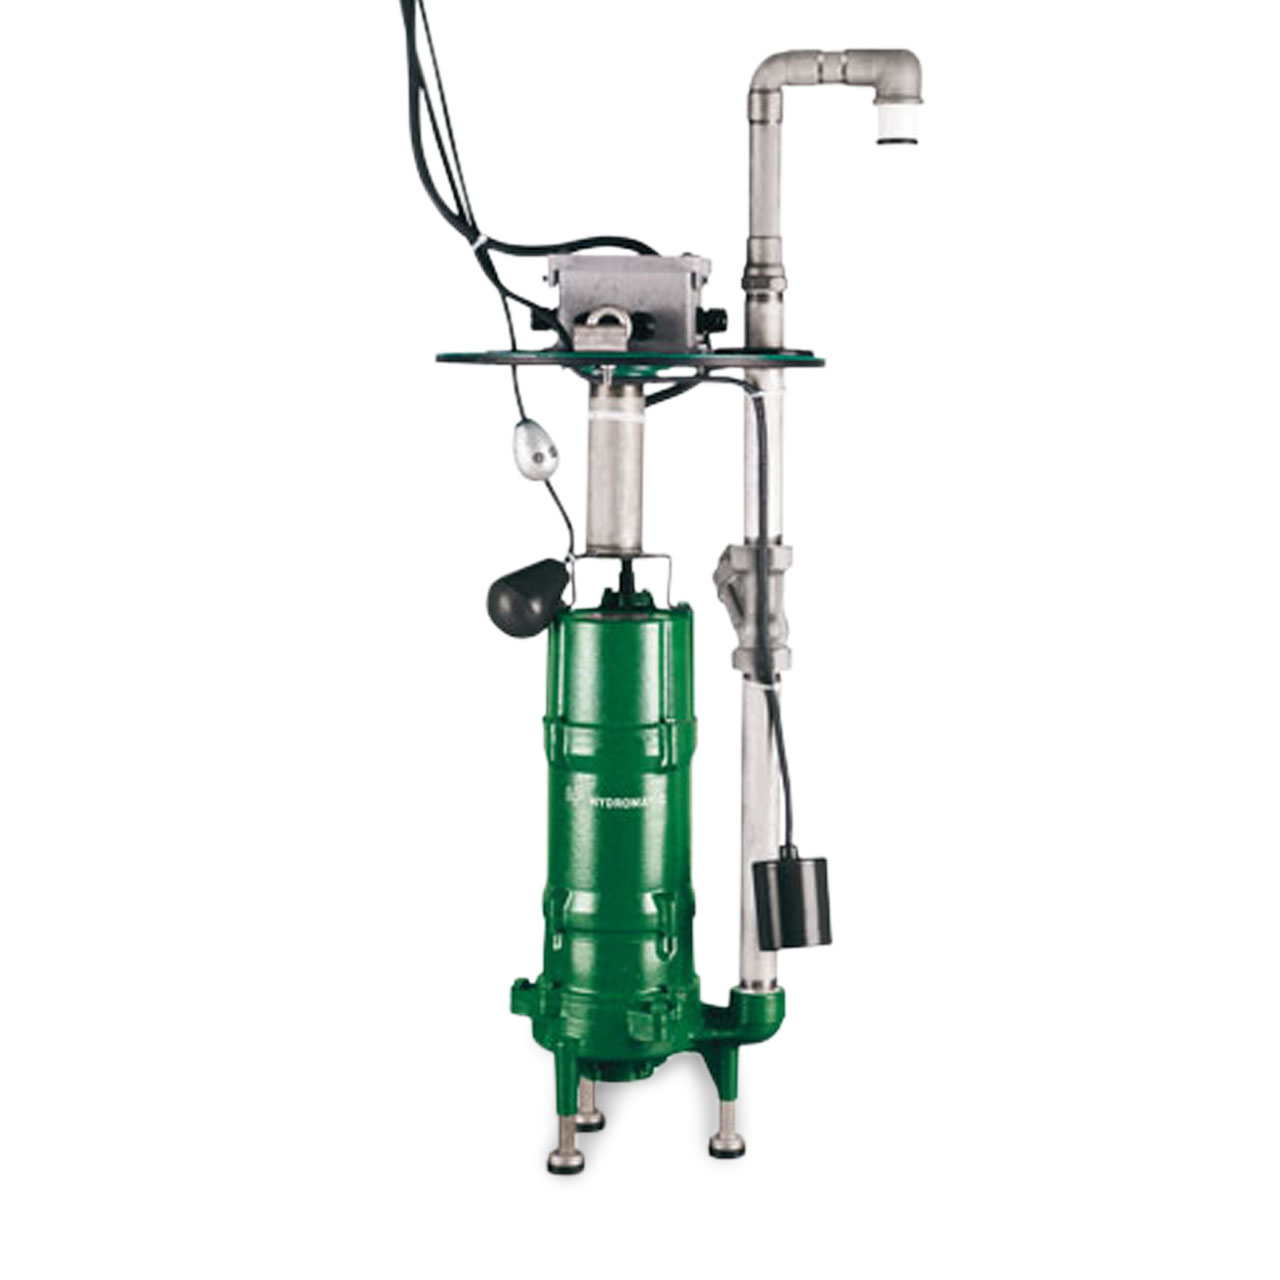 Hydromatic Pump Hydromatic Hpgr200 Retrofit Submersible